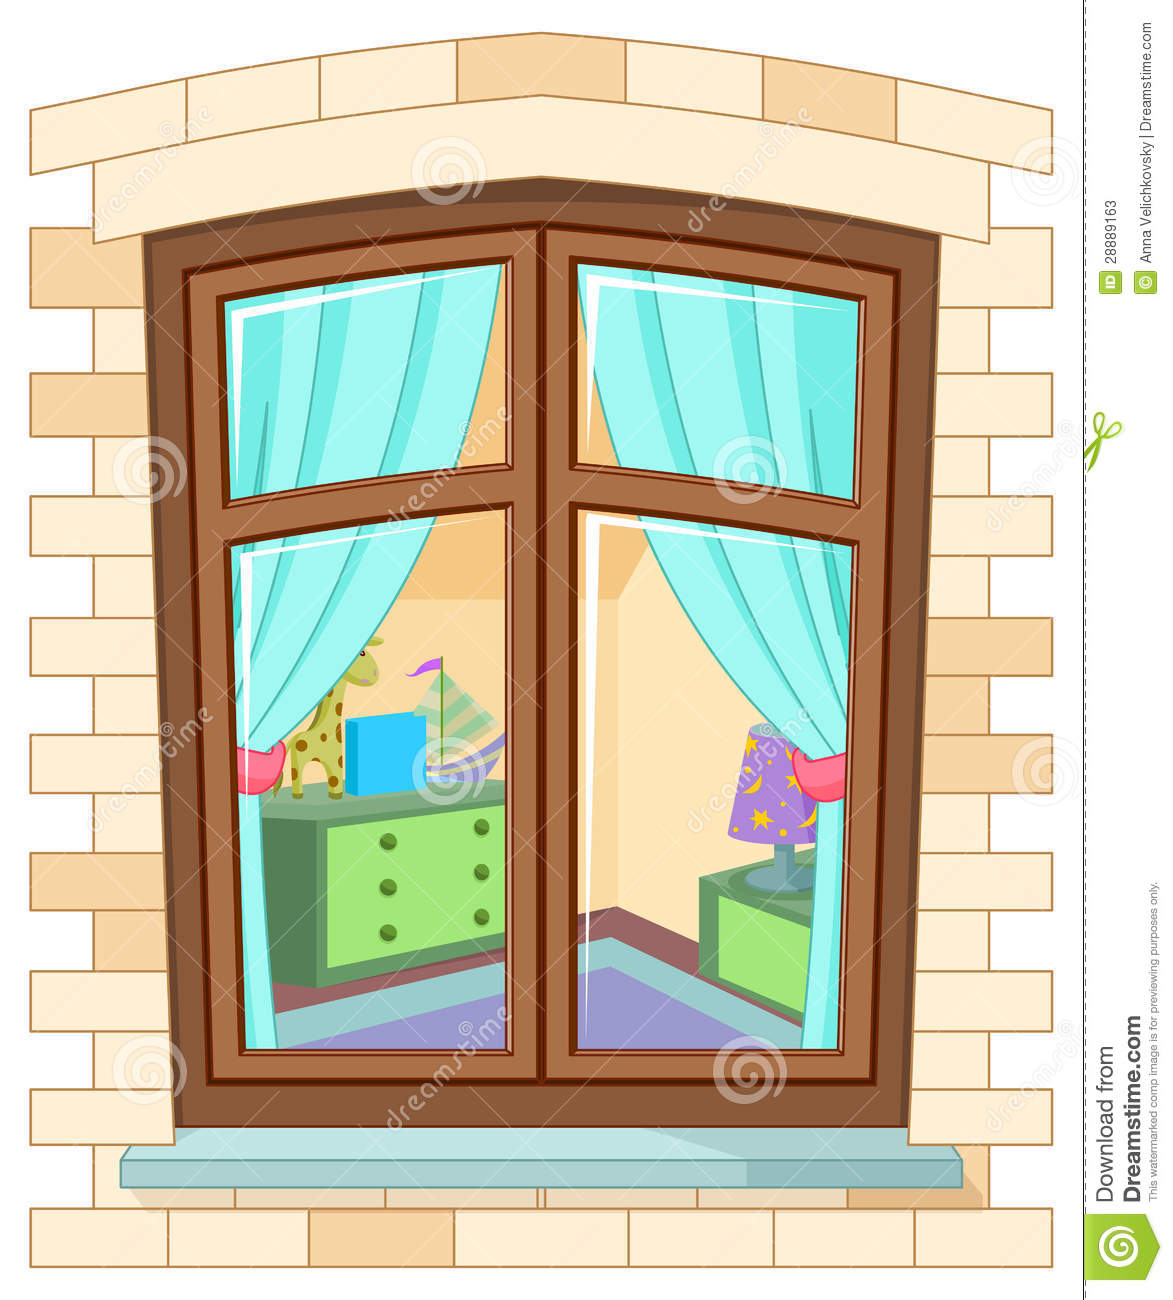 Cartoon window stock photos image 28889163 for Window design cartoon